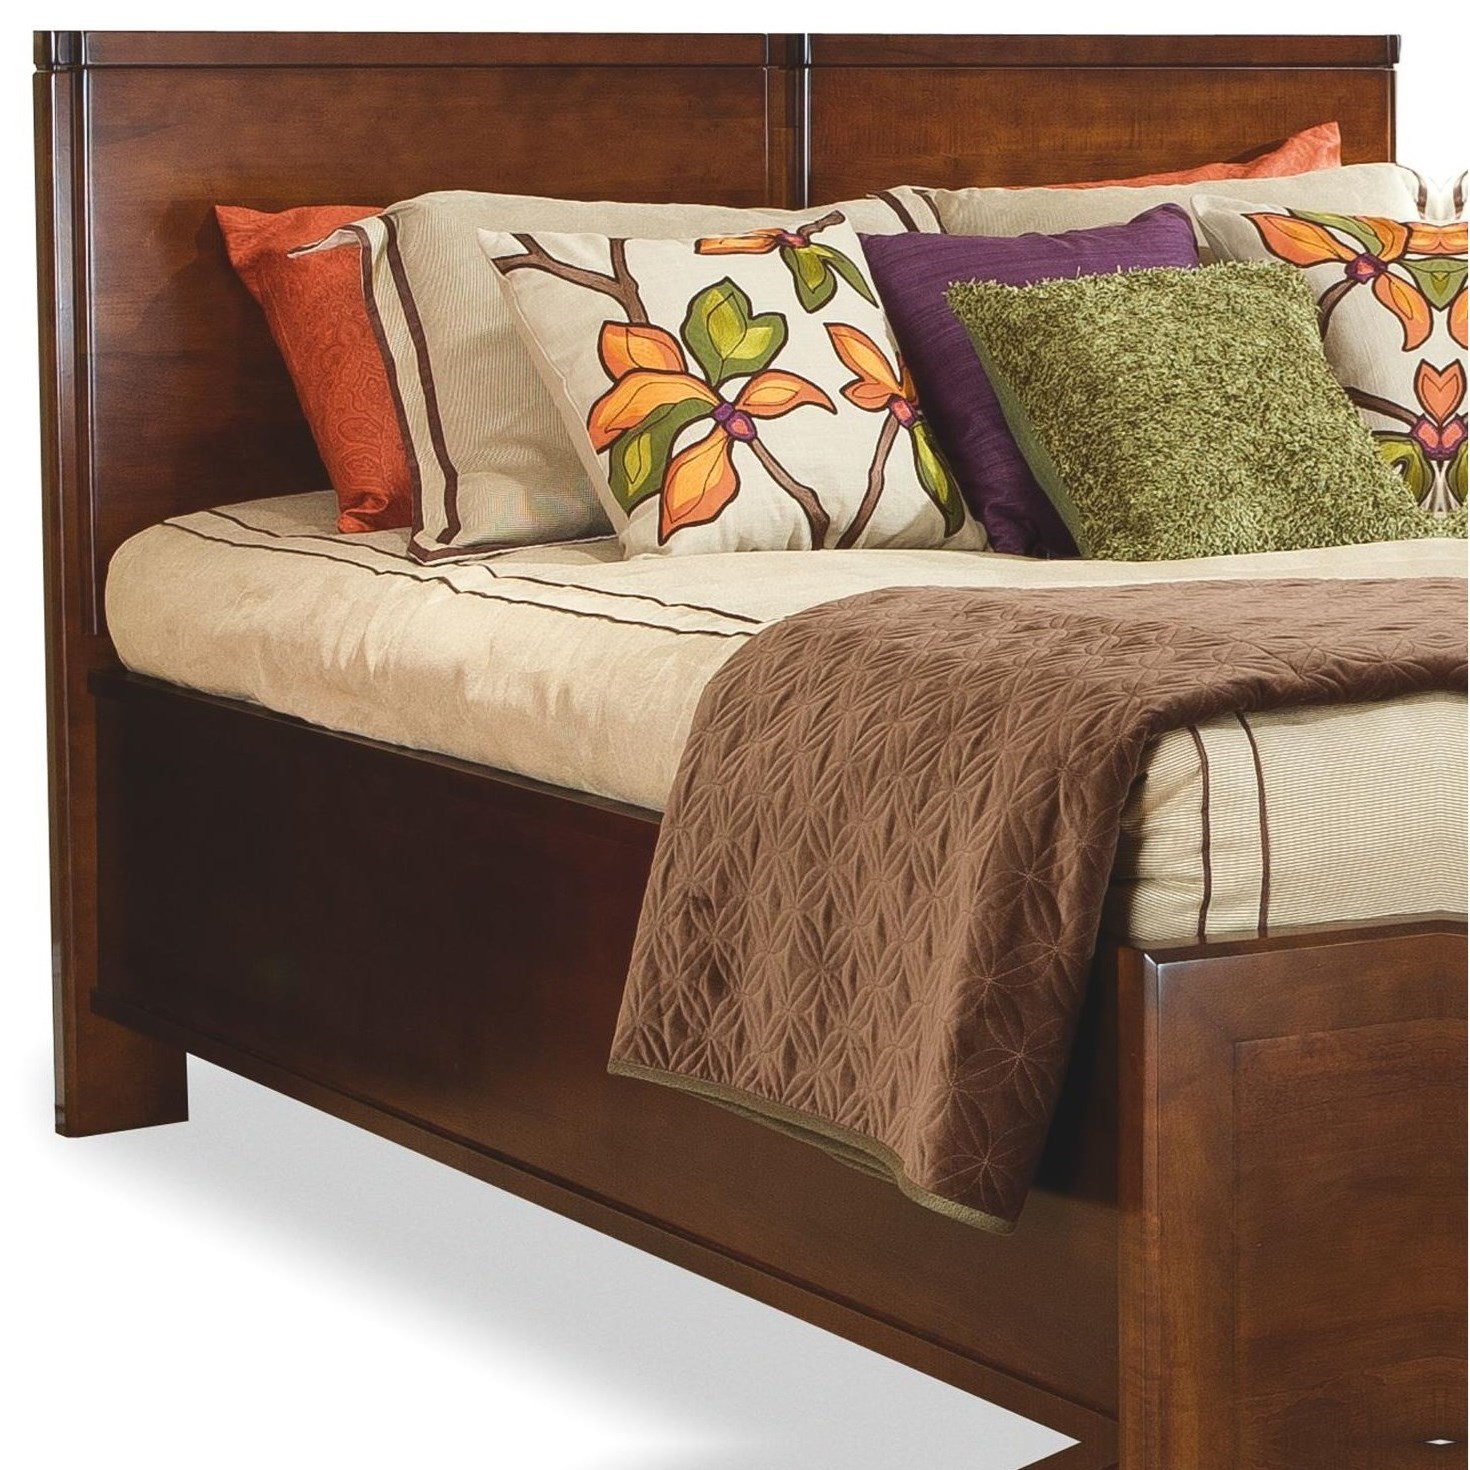 Queen Wood Panel Headboard